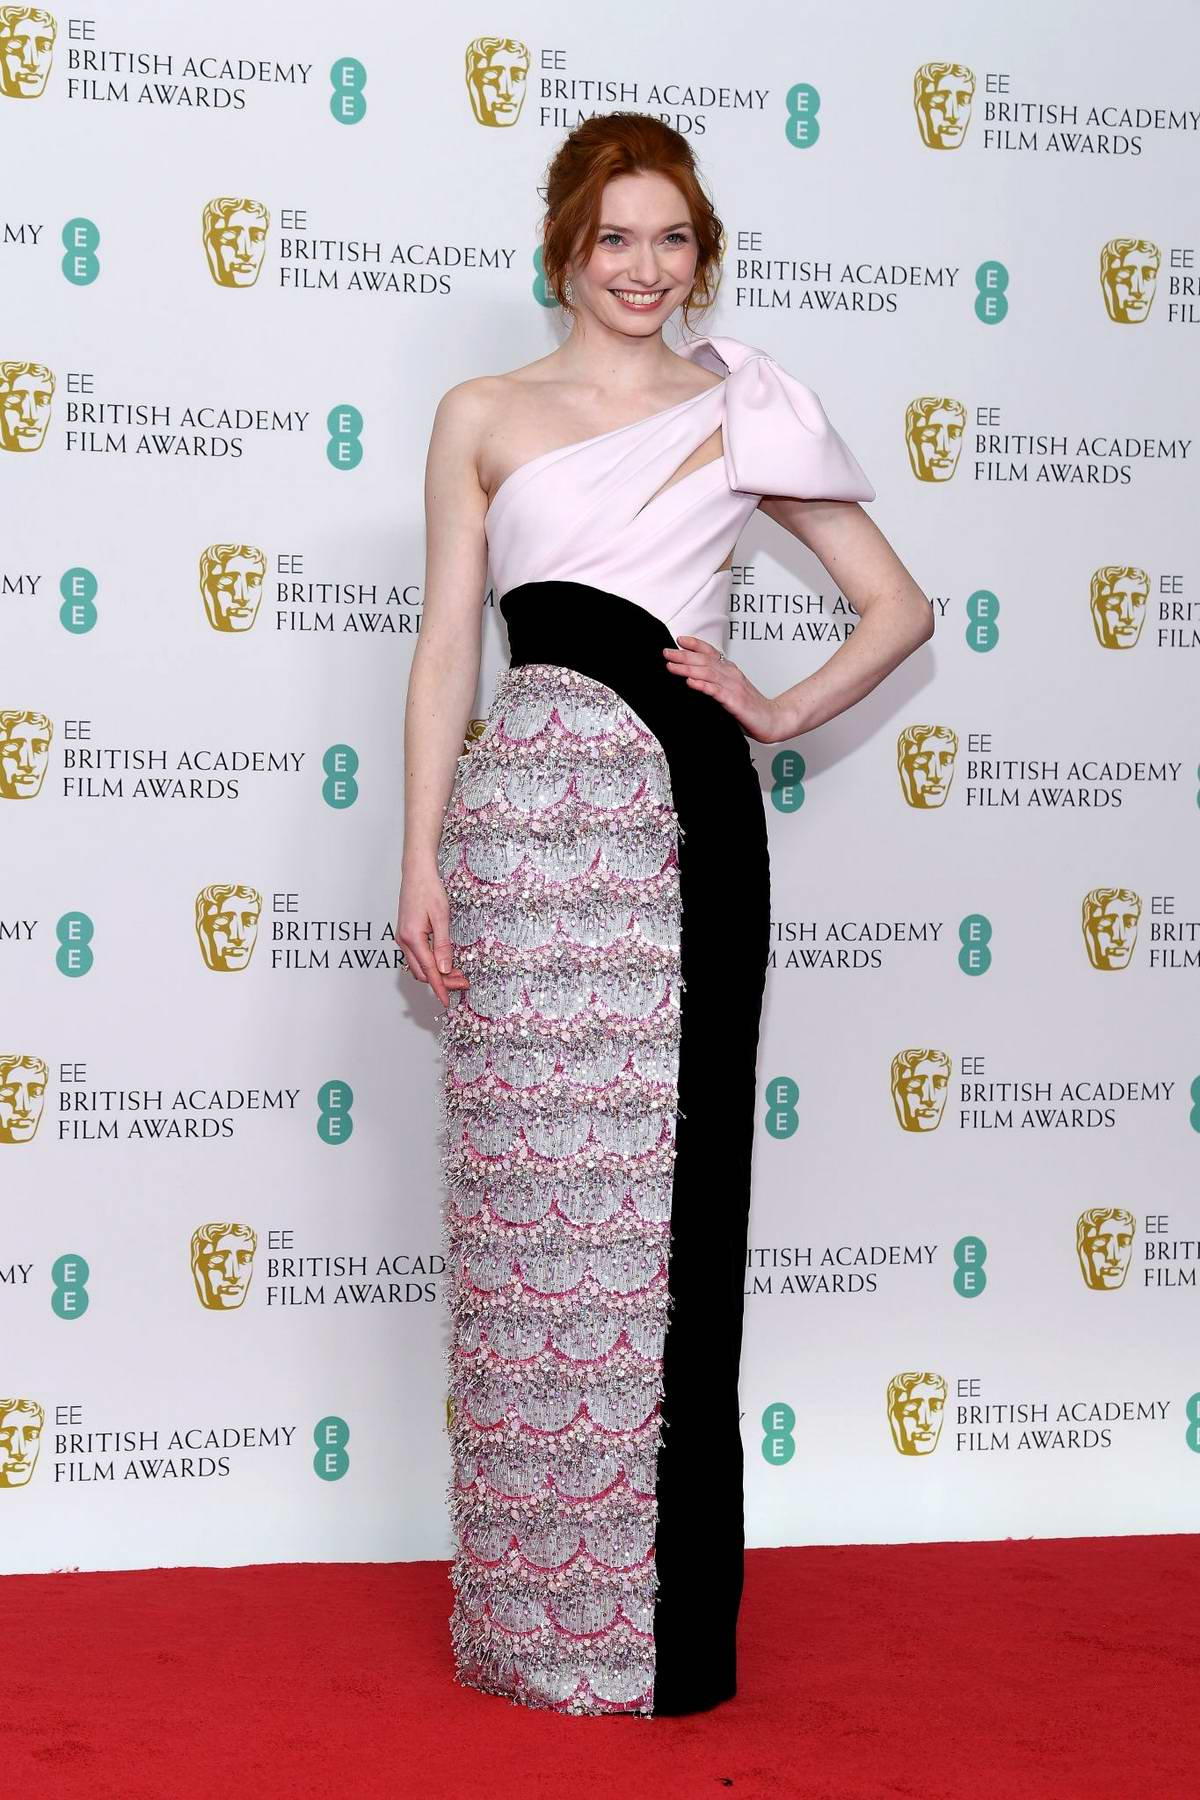 Eleanor Tomlinson attends the 72nd EE British Academy Film Awards (BAFTA 2019) at Royal Albert Hall in London, UK